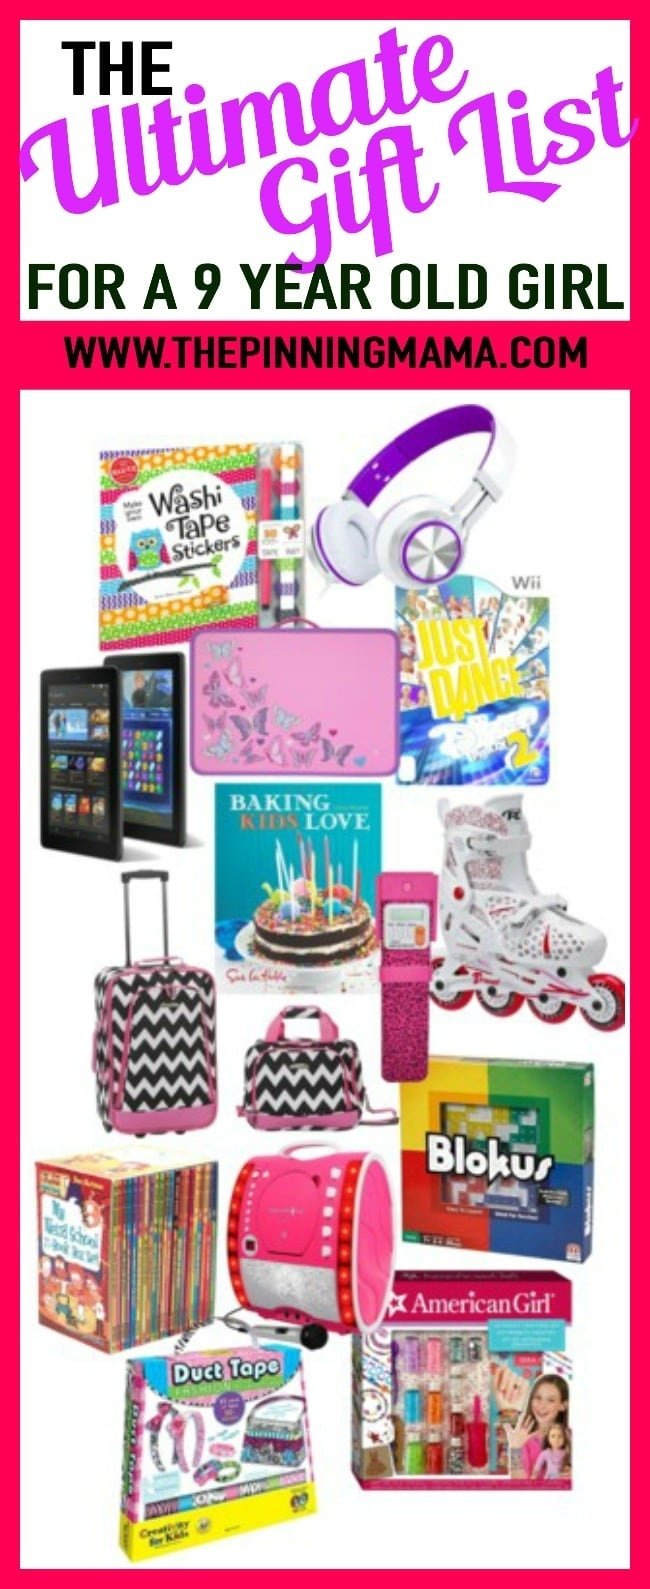 10 Ideal Gift Ideas 9 Year Old Girl the ultimate gift list for a 9 year old girl e280a2 the pinning mama 20 2020